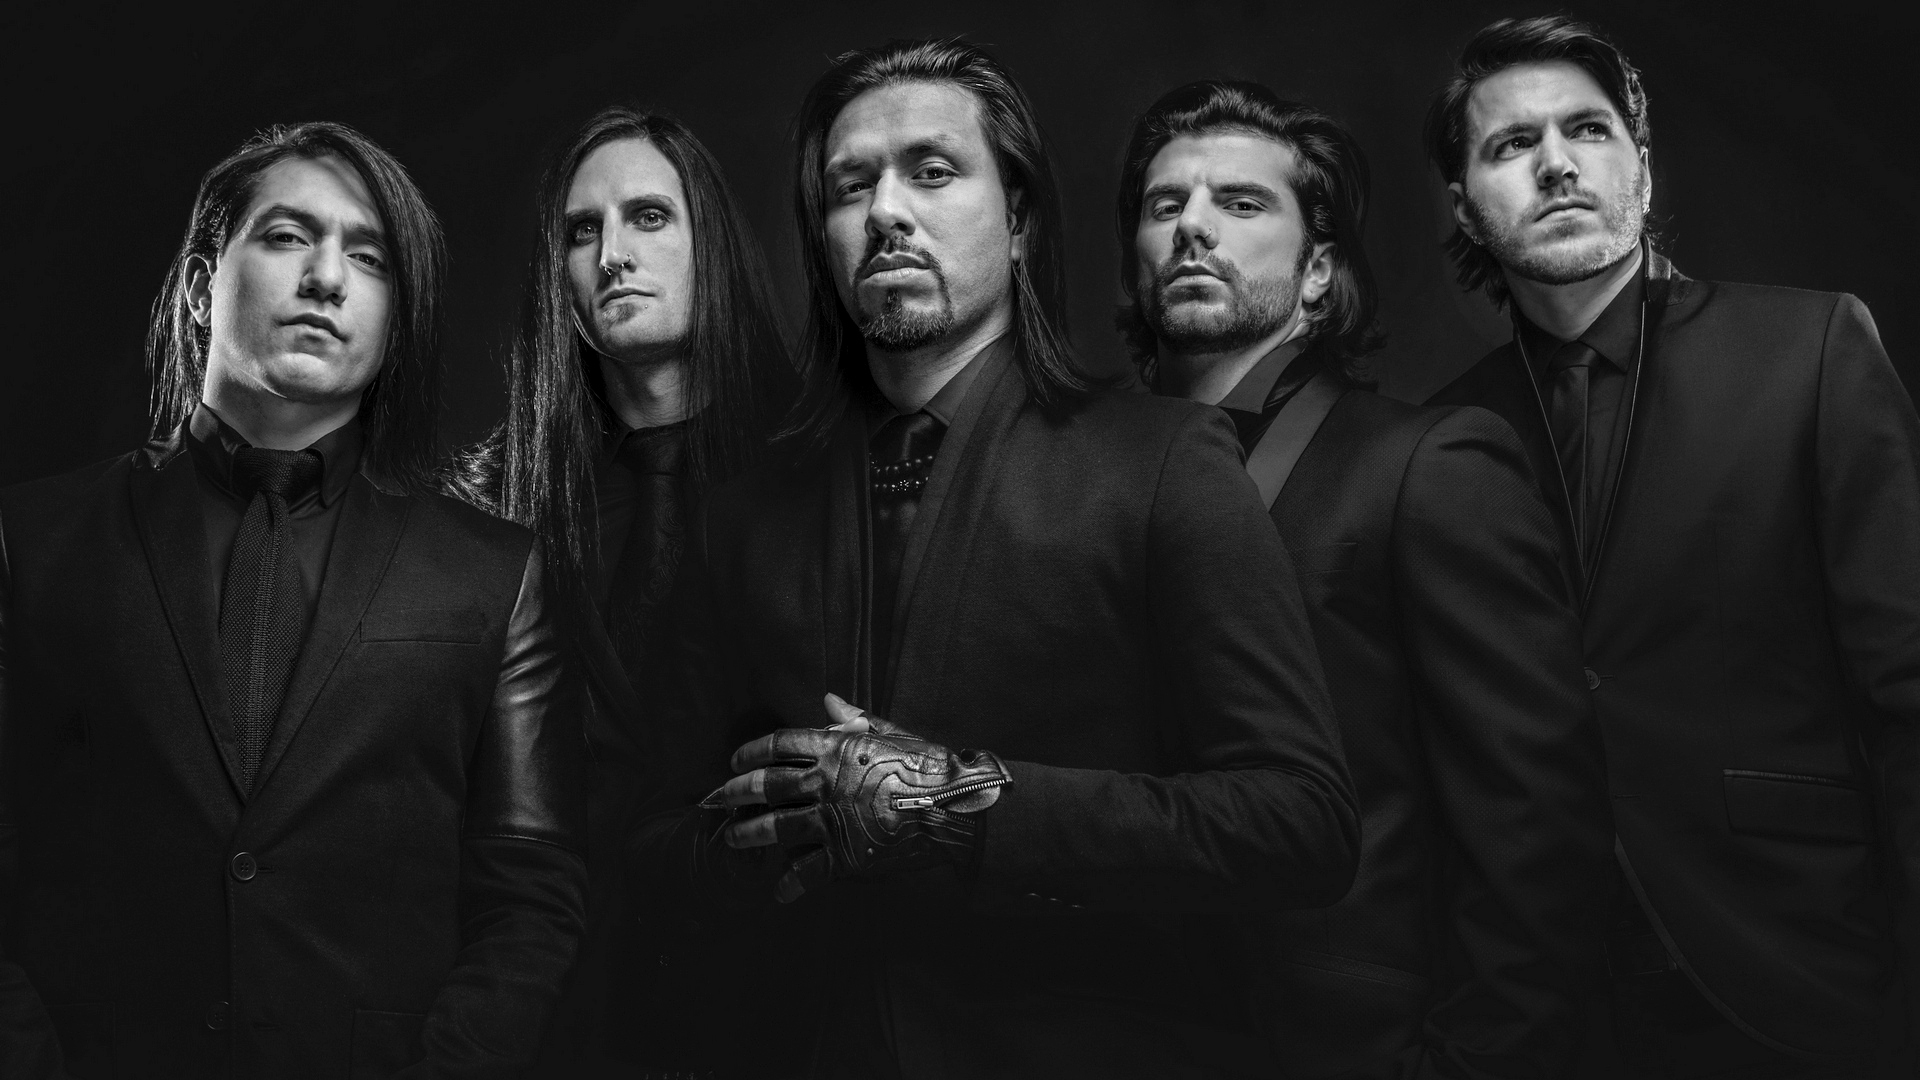 Pop evil new song